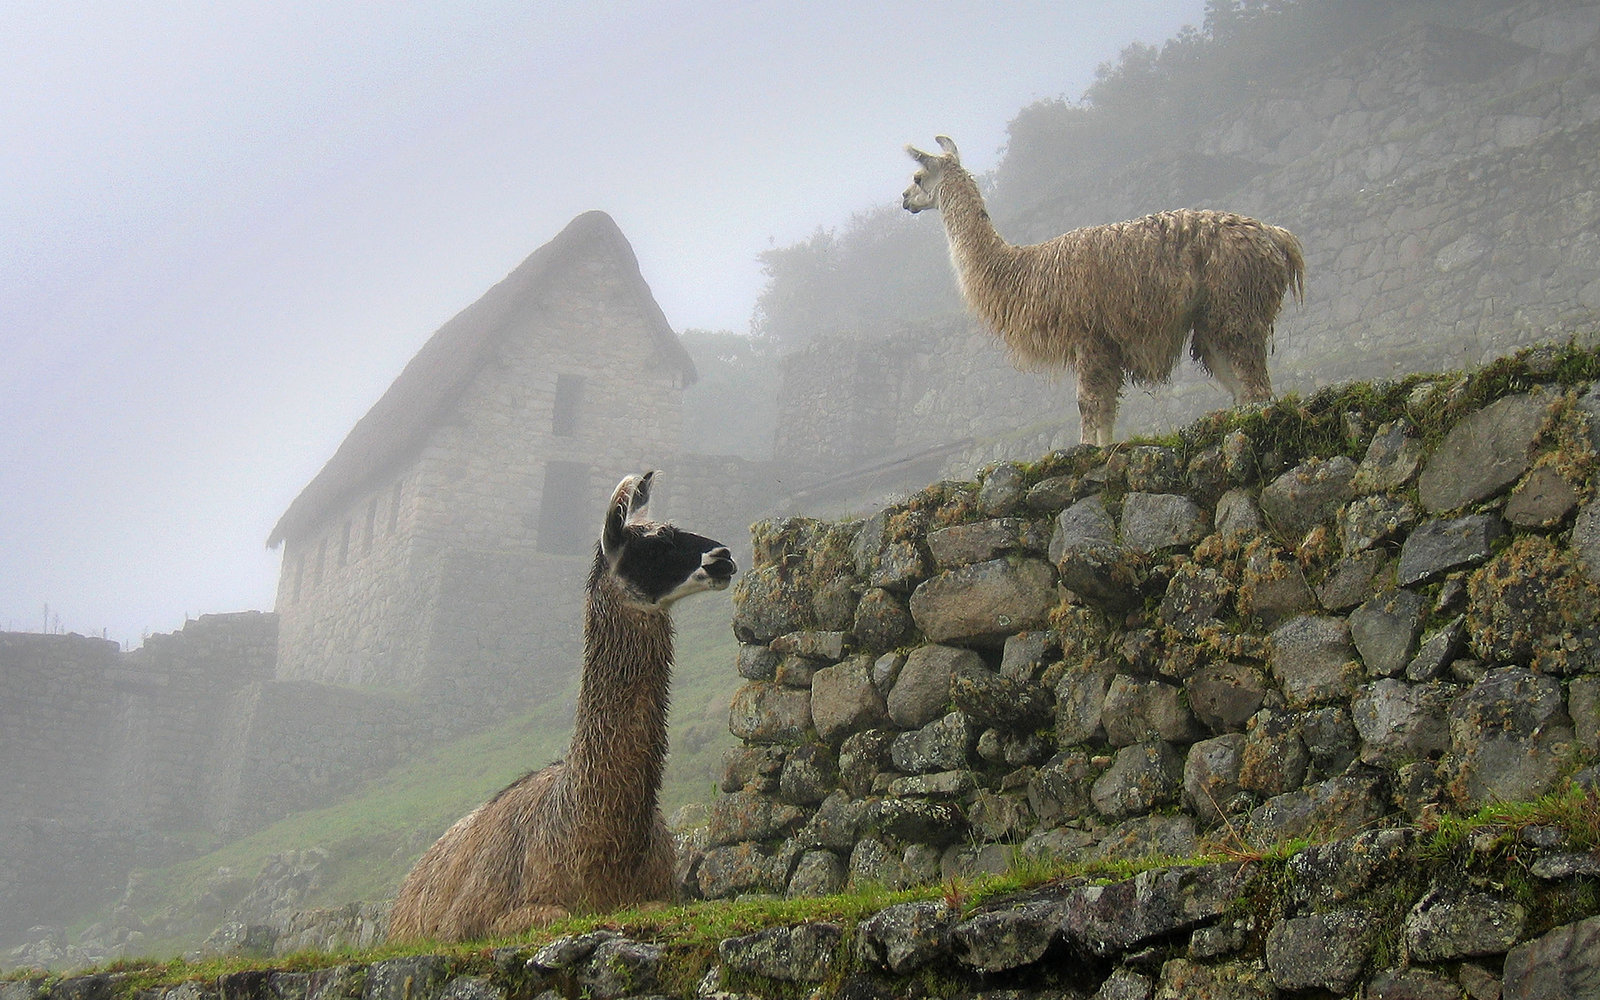 MACHU PICCHU, PERU - MARCH 20:  Llamas are pictured at the Inca ruins of the Machu Picchu sanctuary on March 20, 2005 near Cusco, Peru. The 15th-century Inca site, MachuPicchu also known as 'The Lost City of the Incas' is situated high above the Urubamba